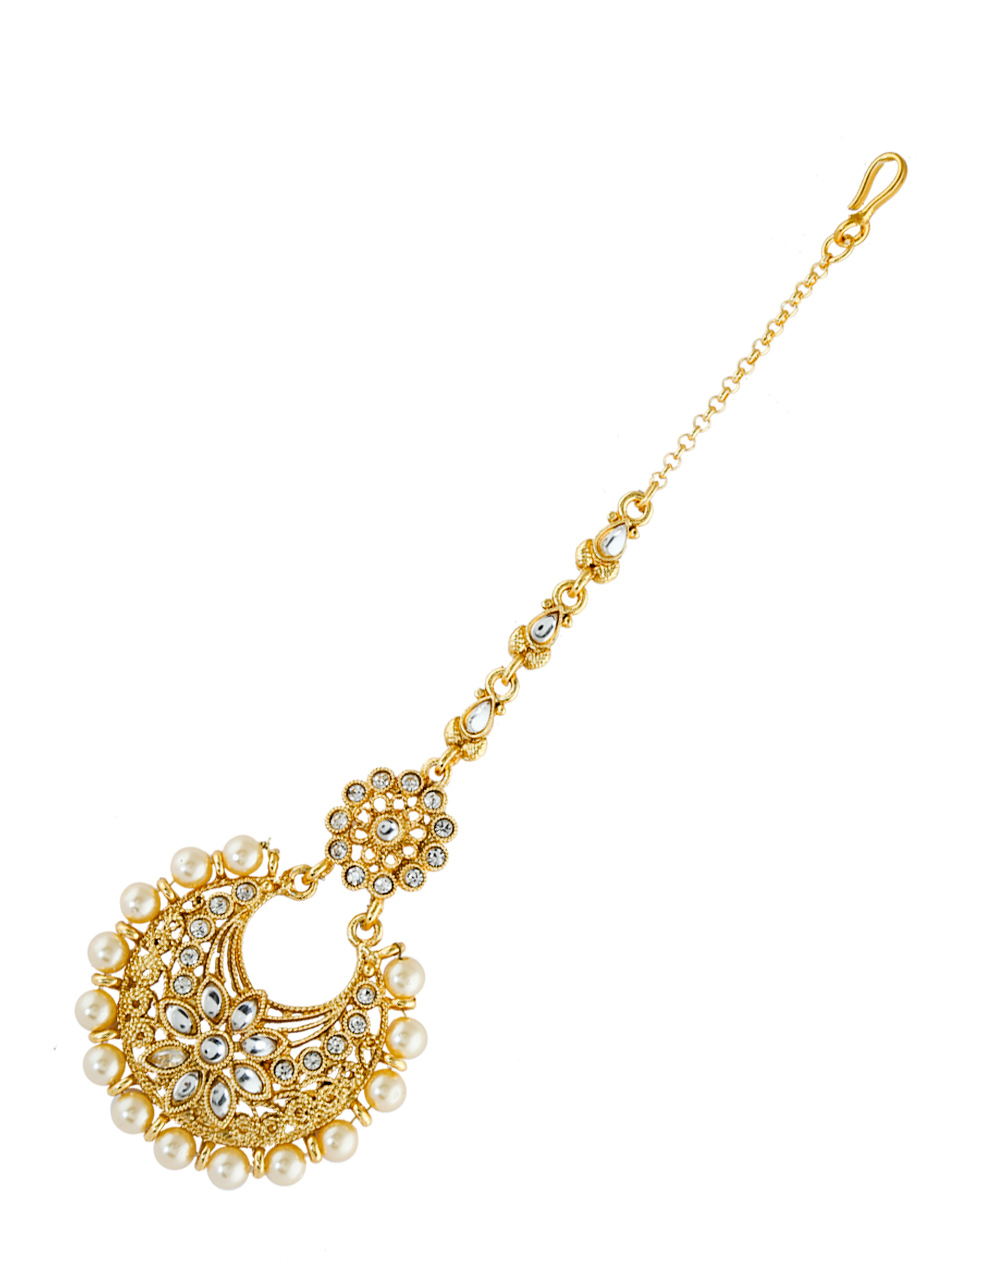 Fancy Gold Finish Styled With Pearls Beads Mang Tikka Jewellery